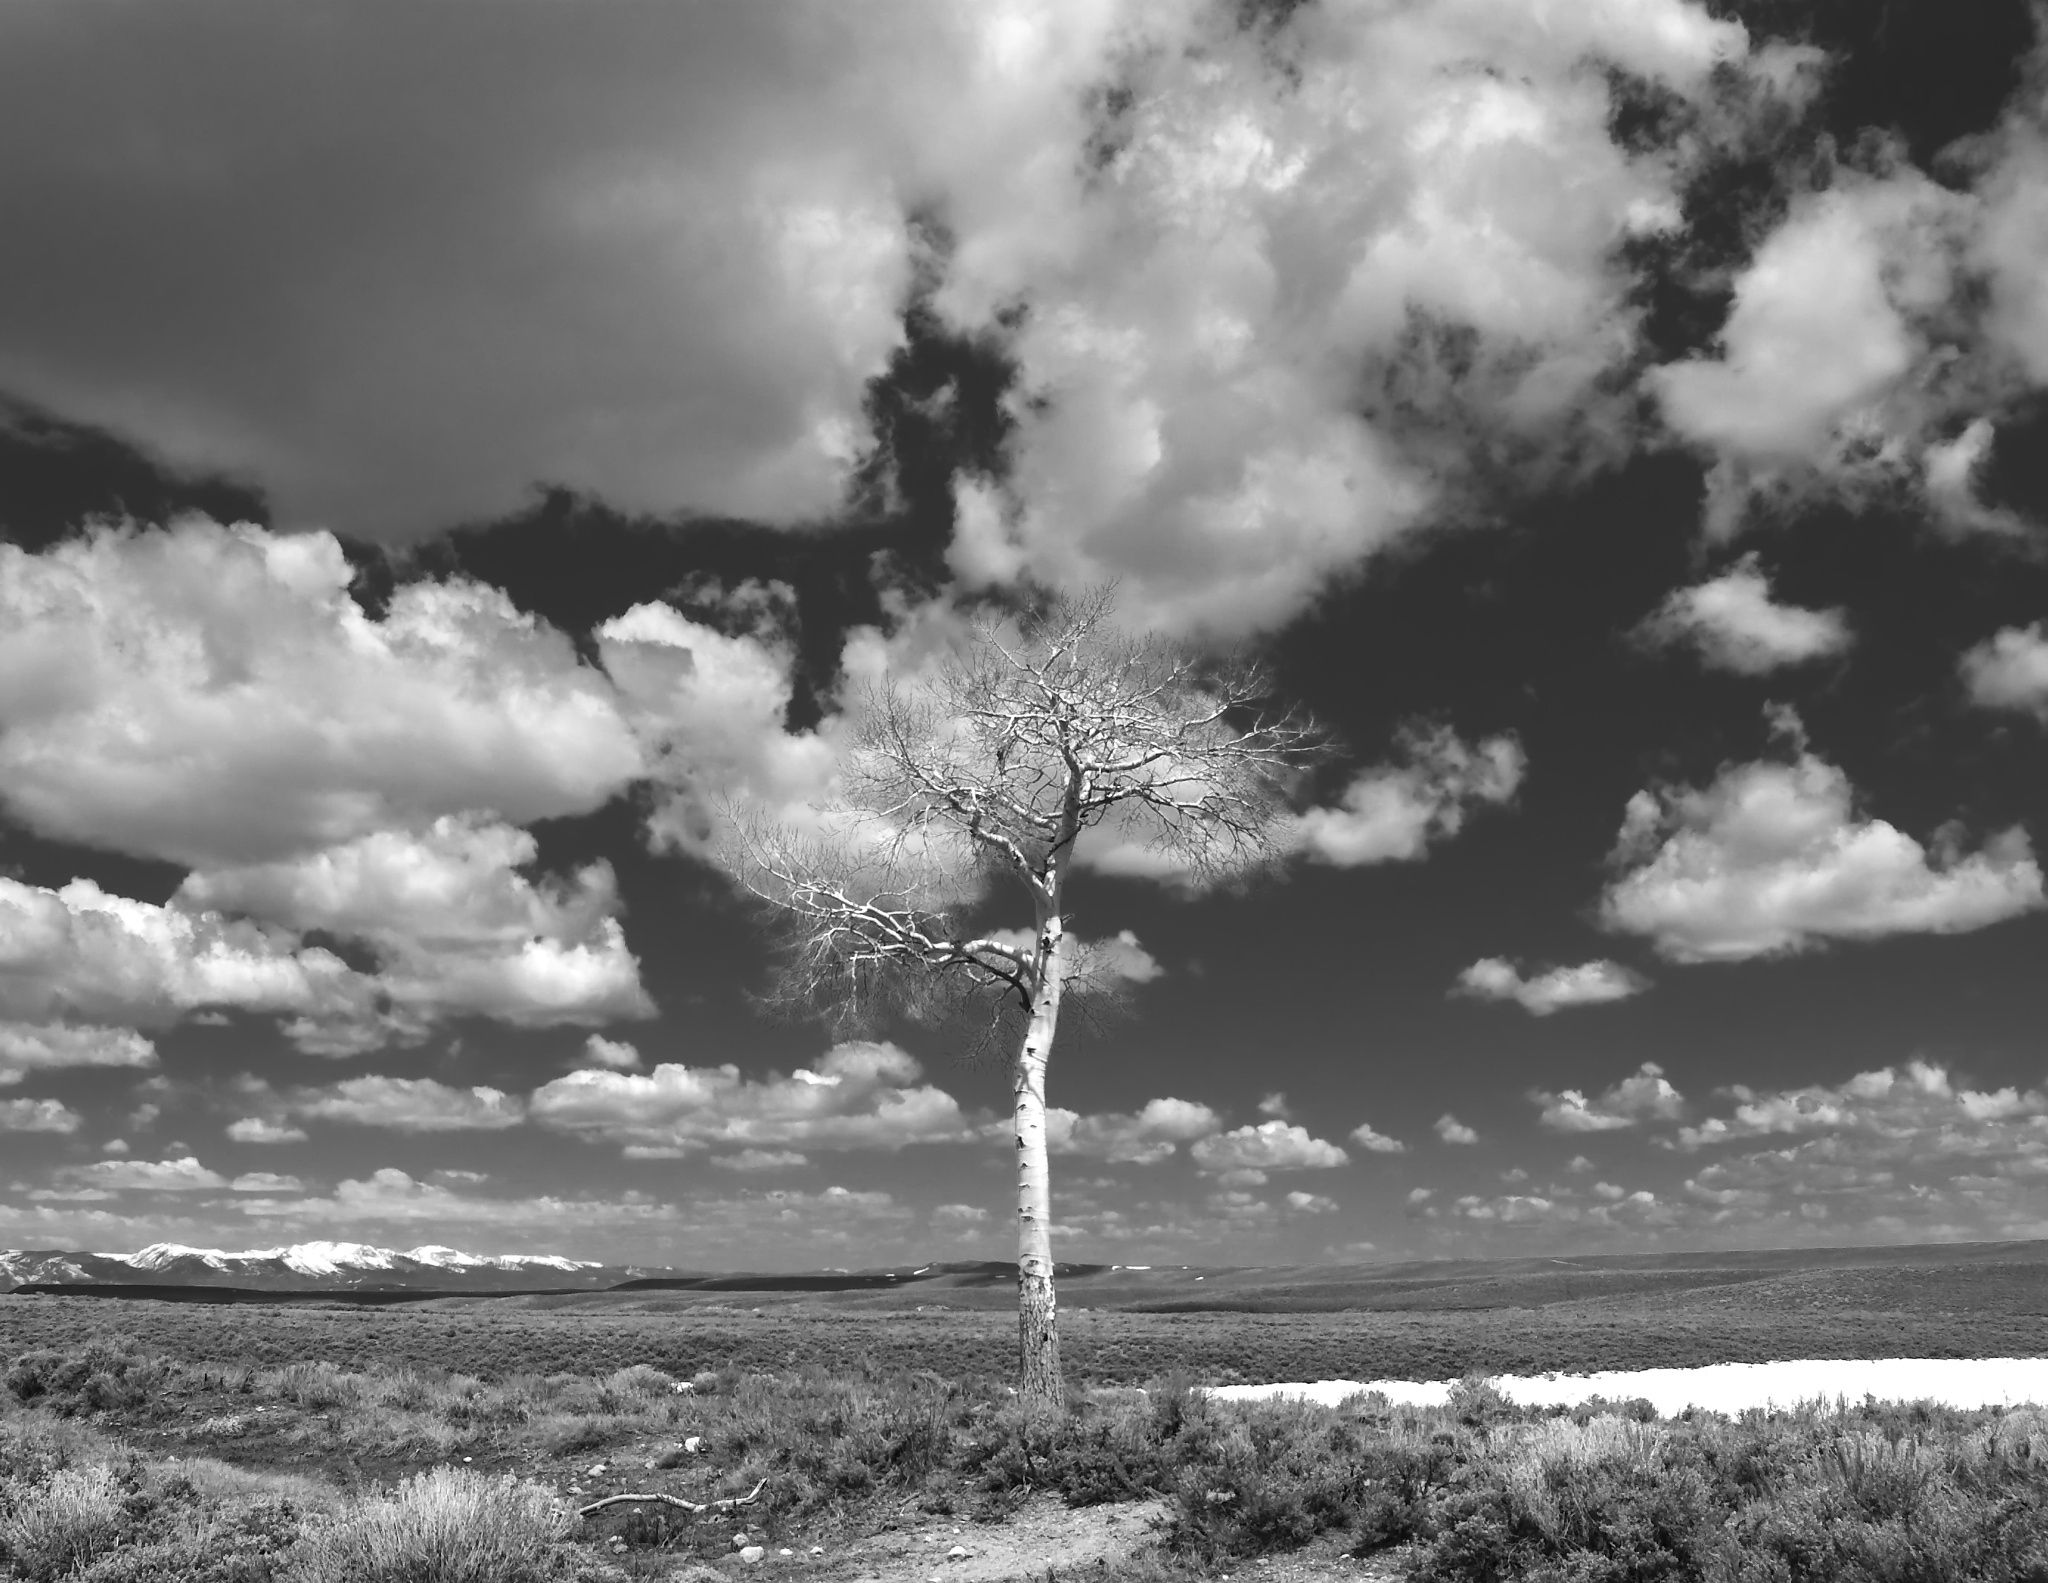 Lonley Tree by Gerry Morrell on 500px